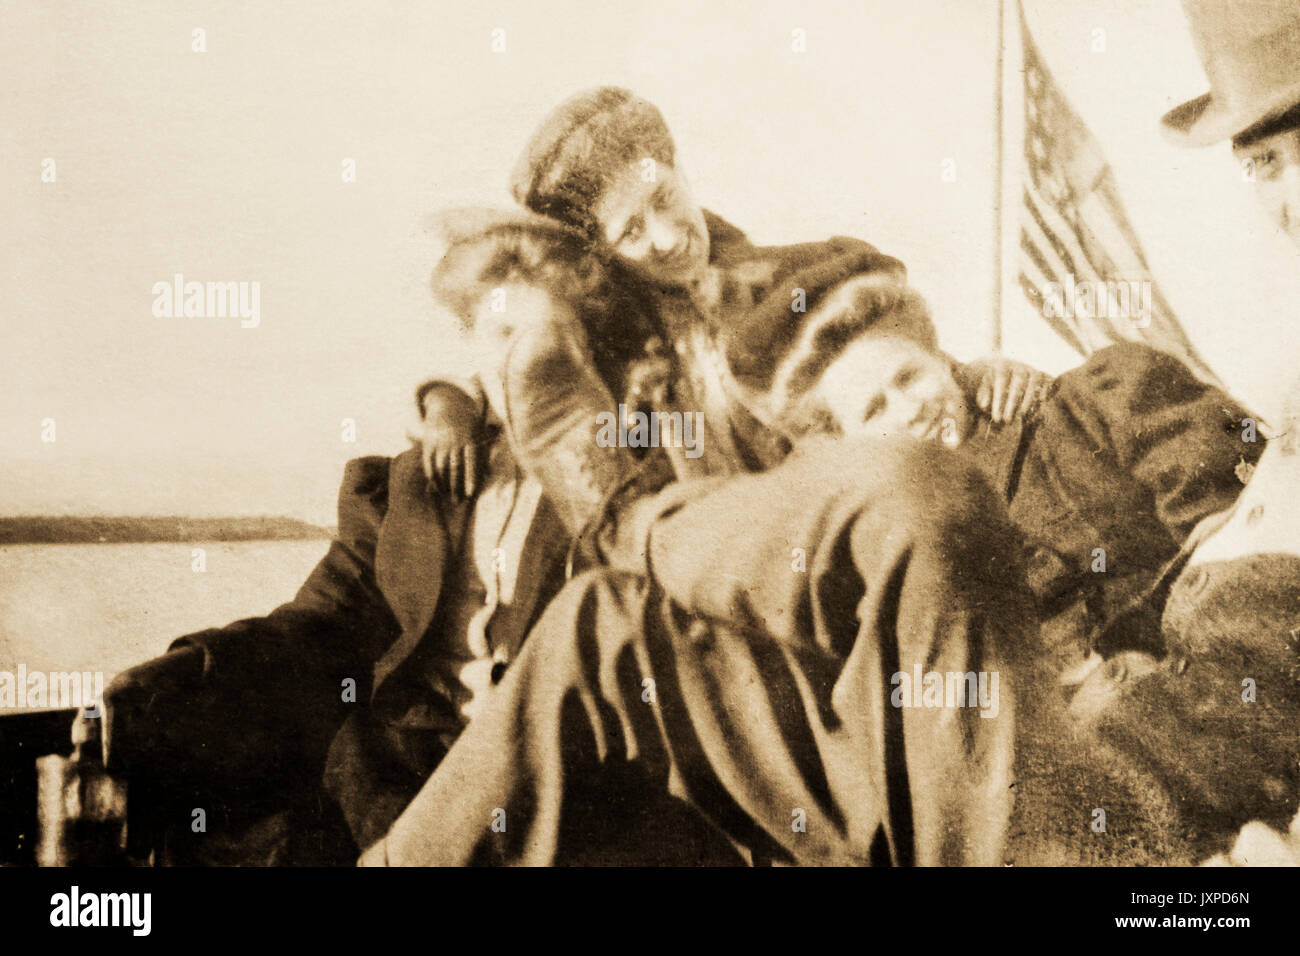 Men and women having a good time on a boat on lake Minnetonka in Minnesota 1907-1908 Stock Photo